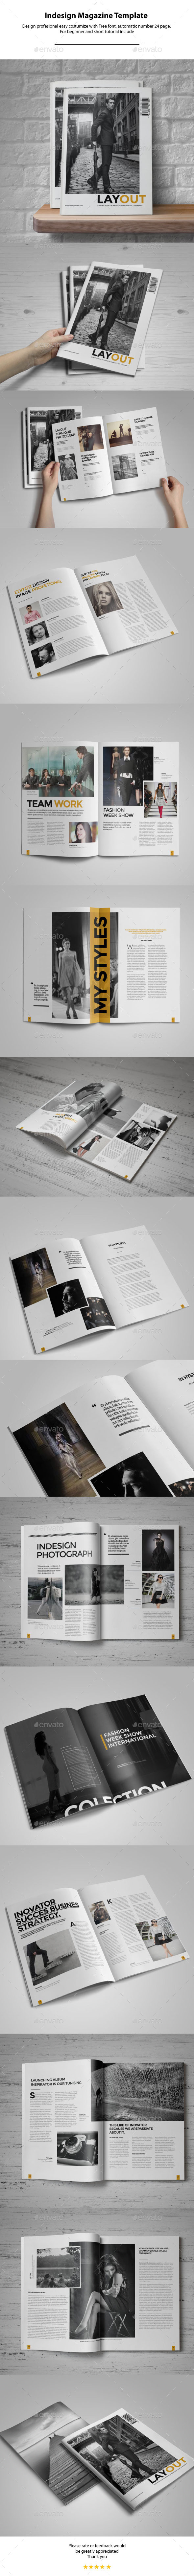 GraphicRiver Indesign Magazine Template 11016212